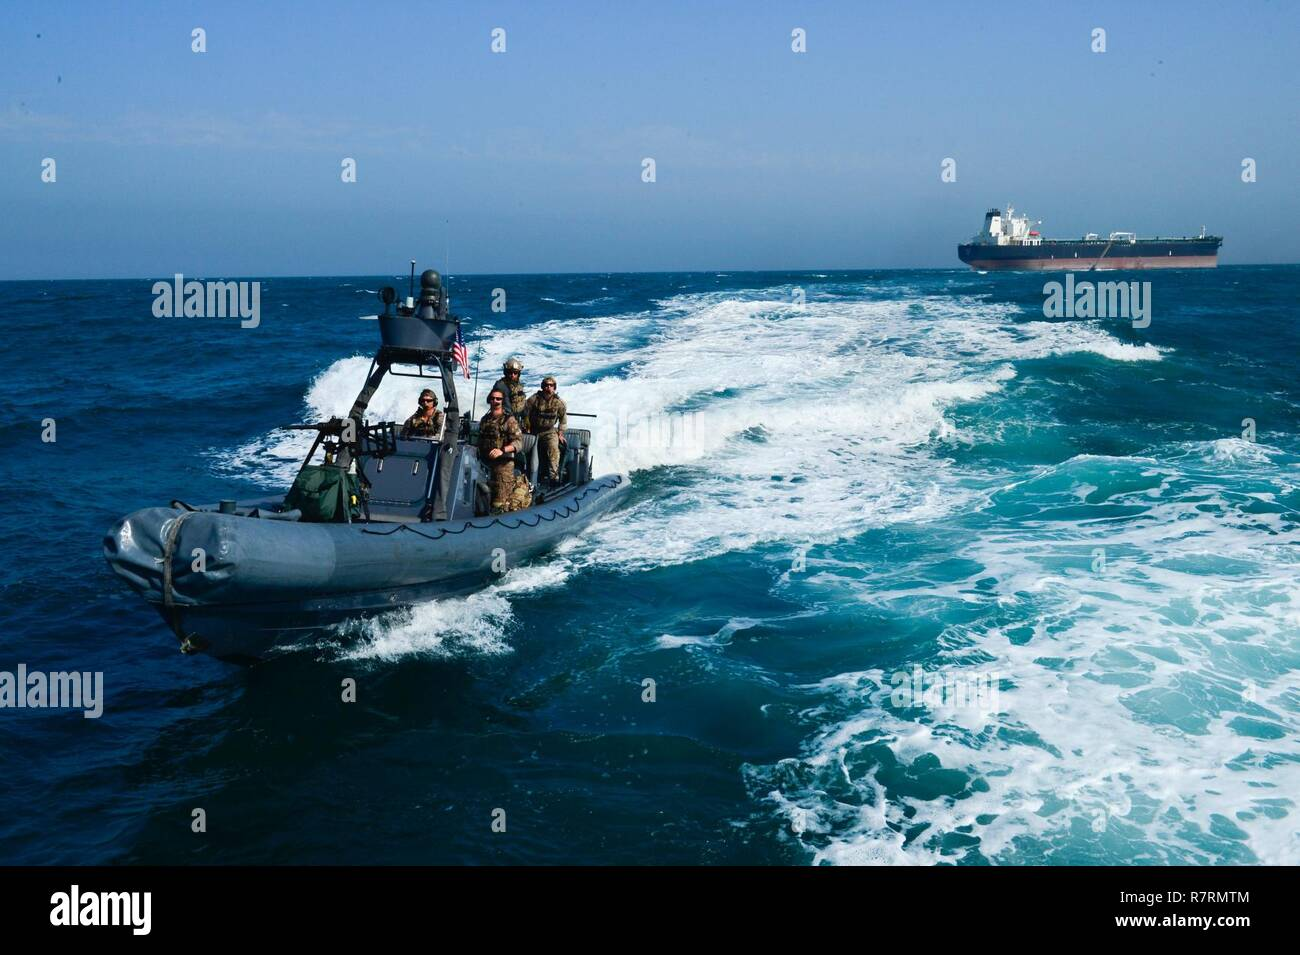 KUWAIT - A U.S. Navy special warfare combatant craft crew returns from a simulated mission to recover a hijacked tanker Apr 3, in Kuwait territorial waters as part of exercise Eagle Resolve 2017. - Stock Image